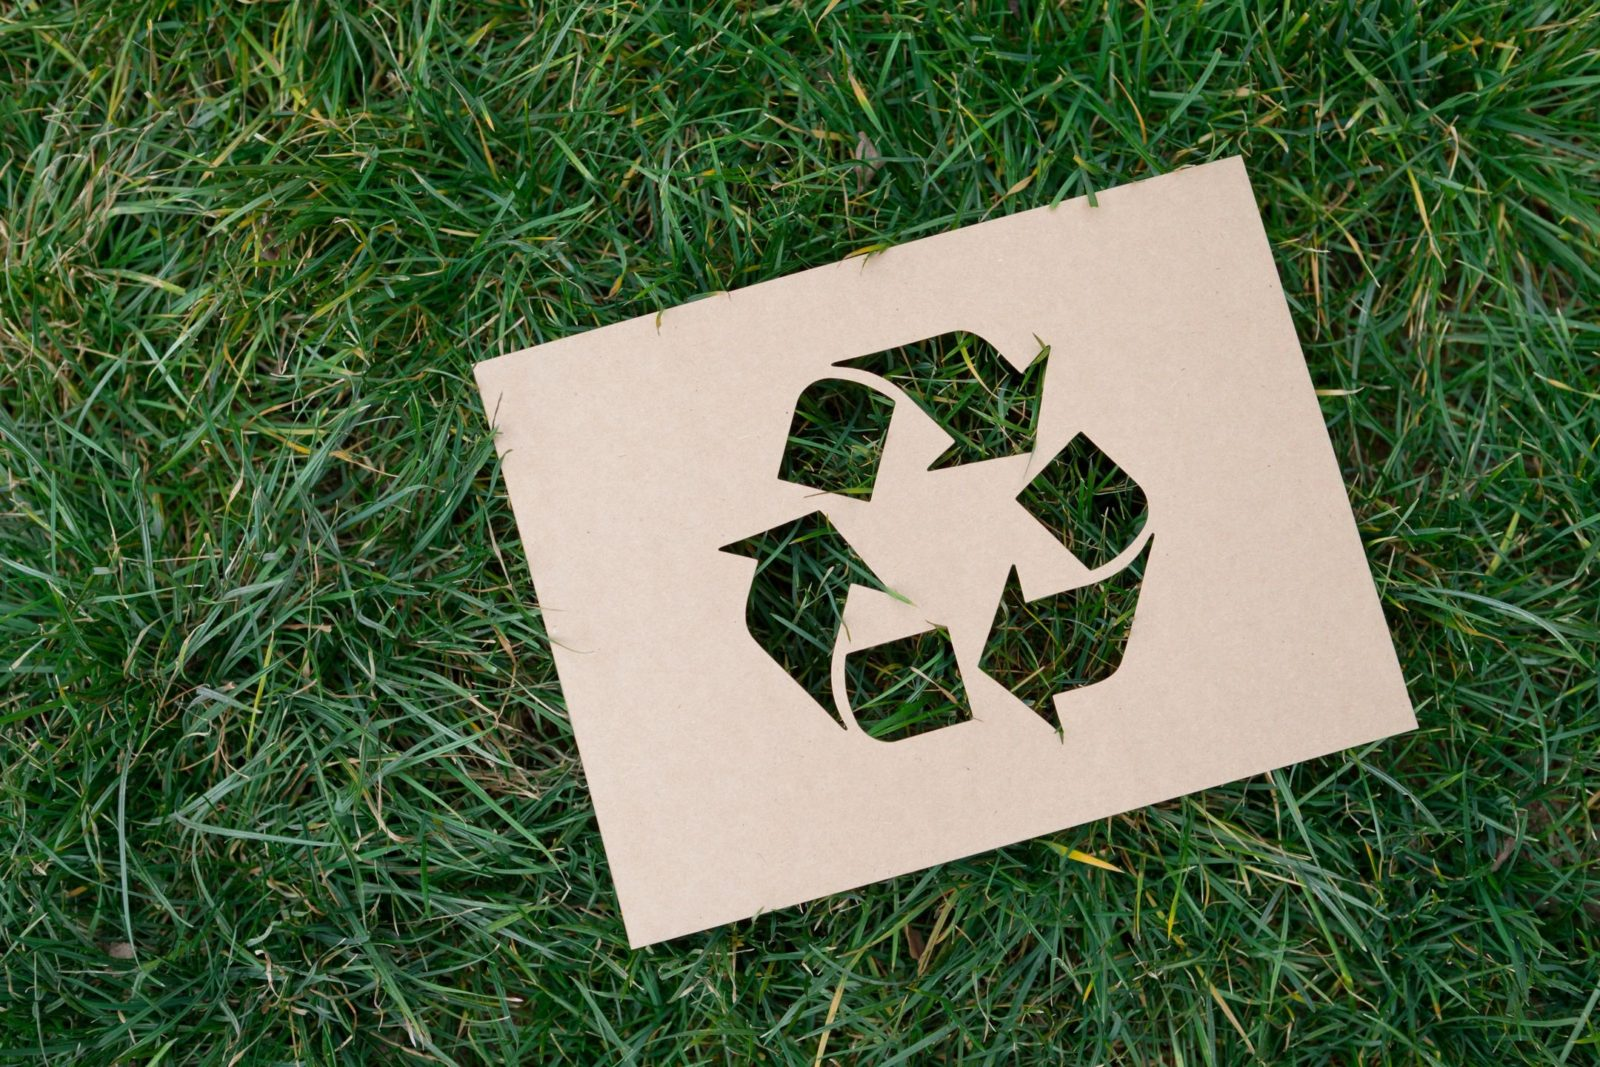 recycle symbol in the grass